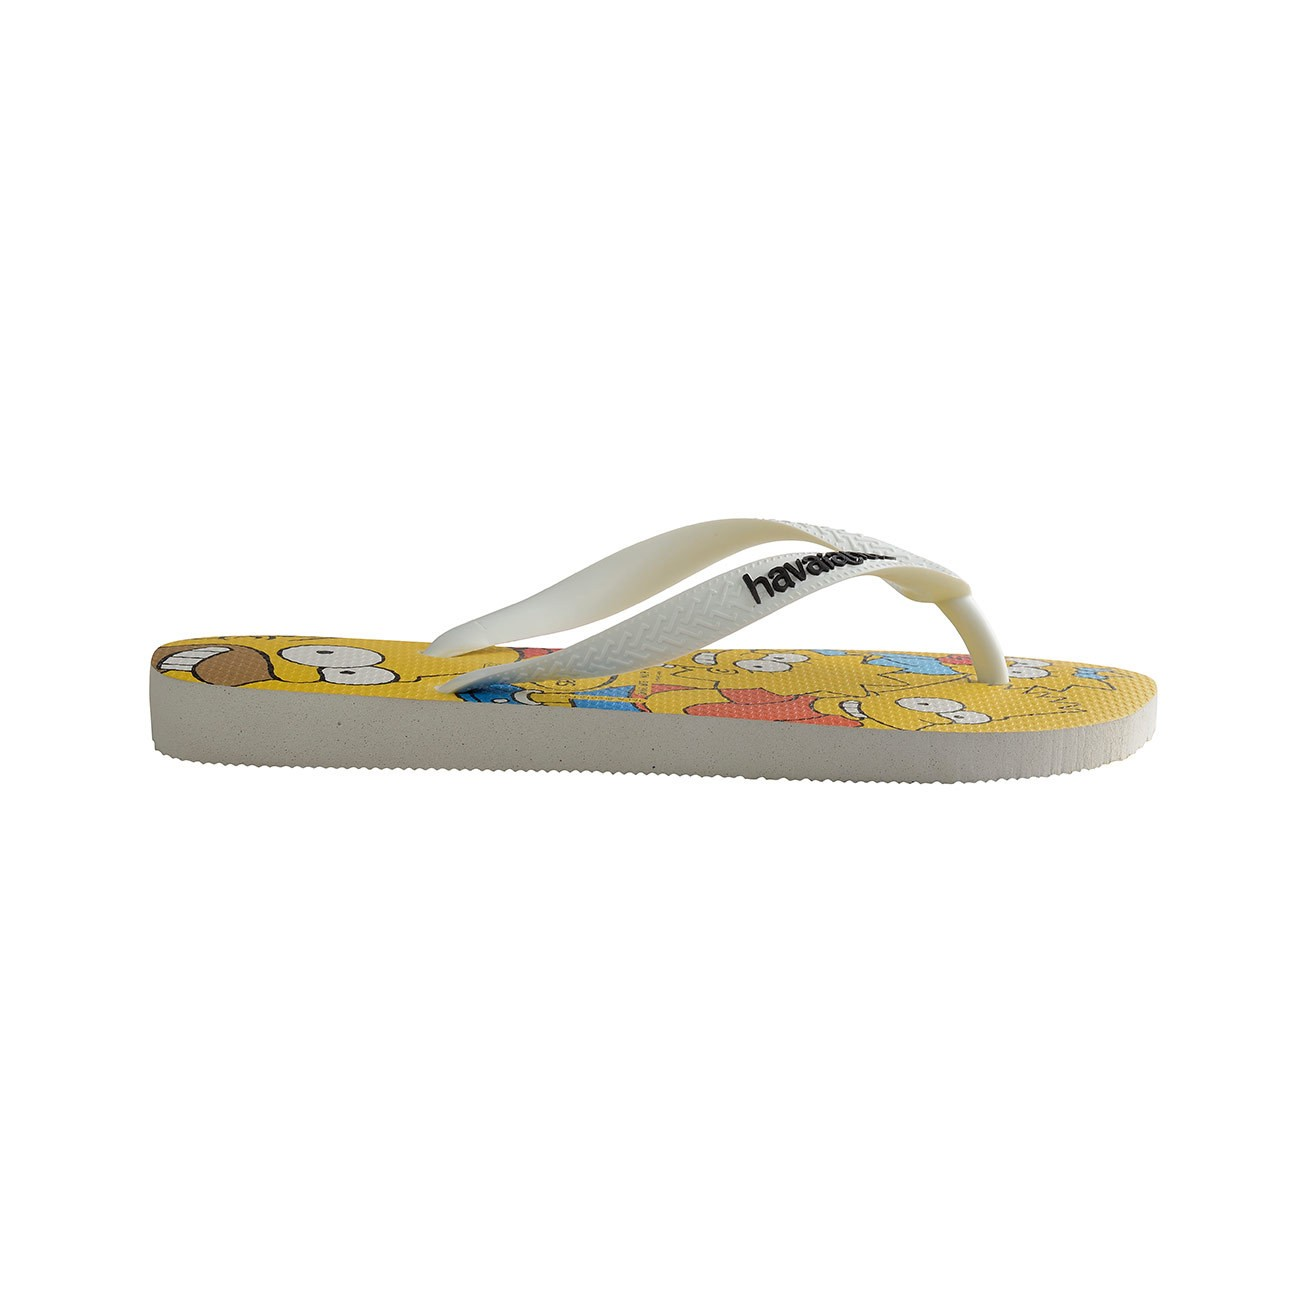 styleicone.com Zehentrenner Simpsons White